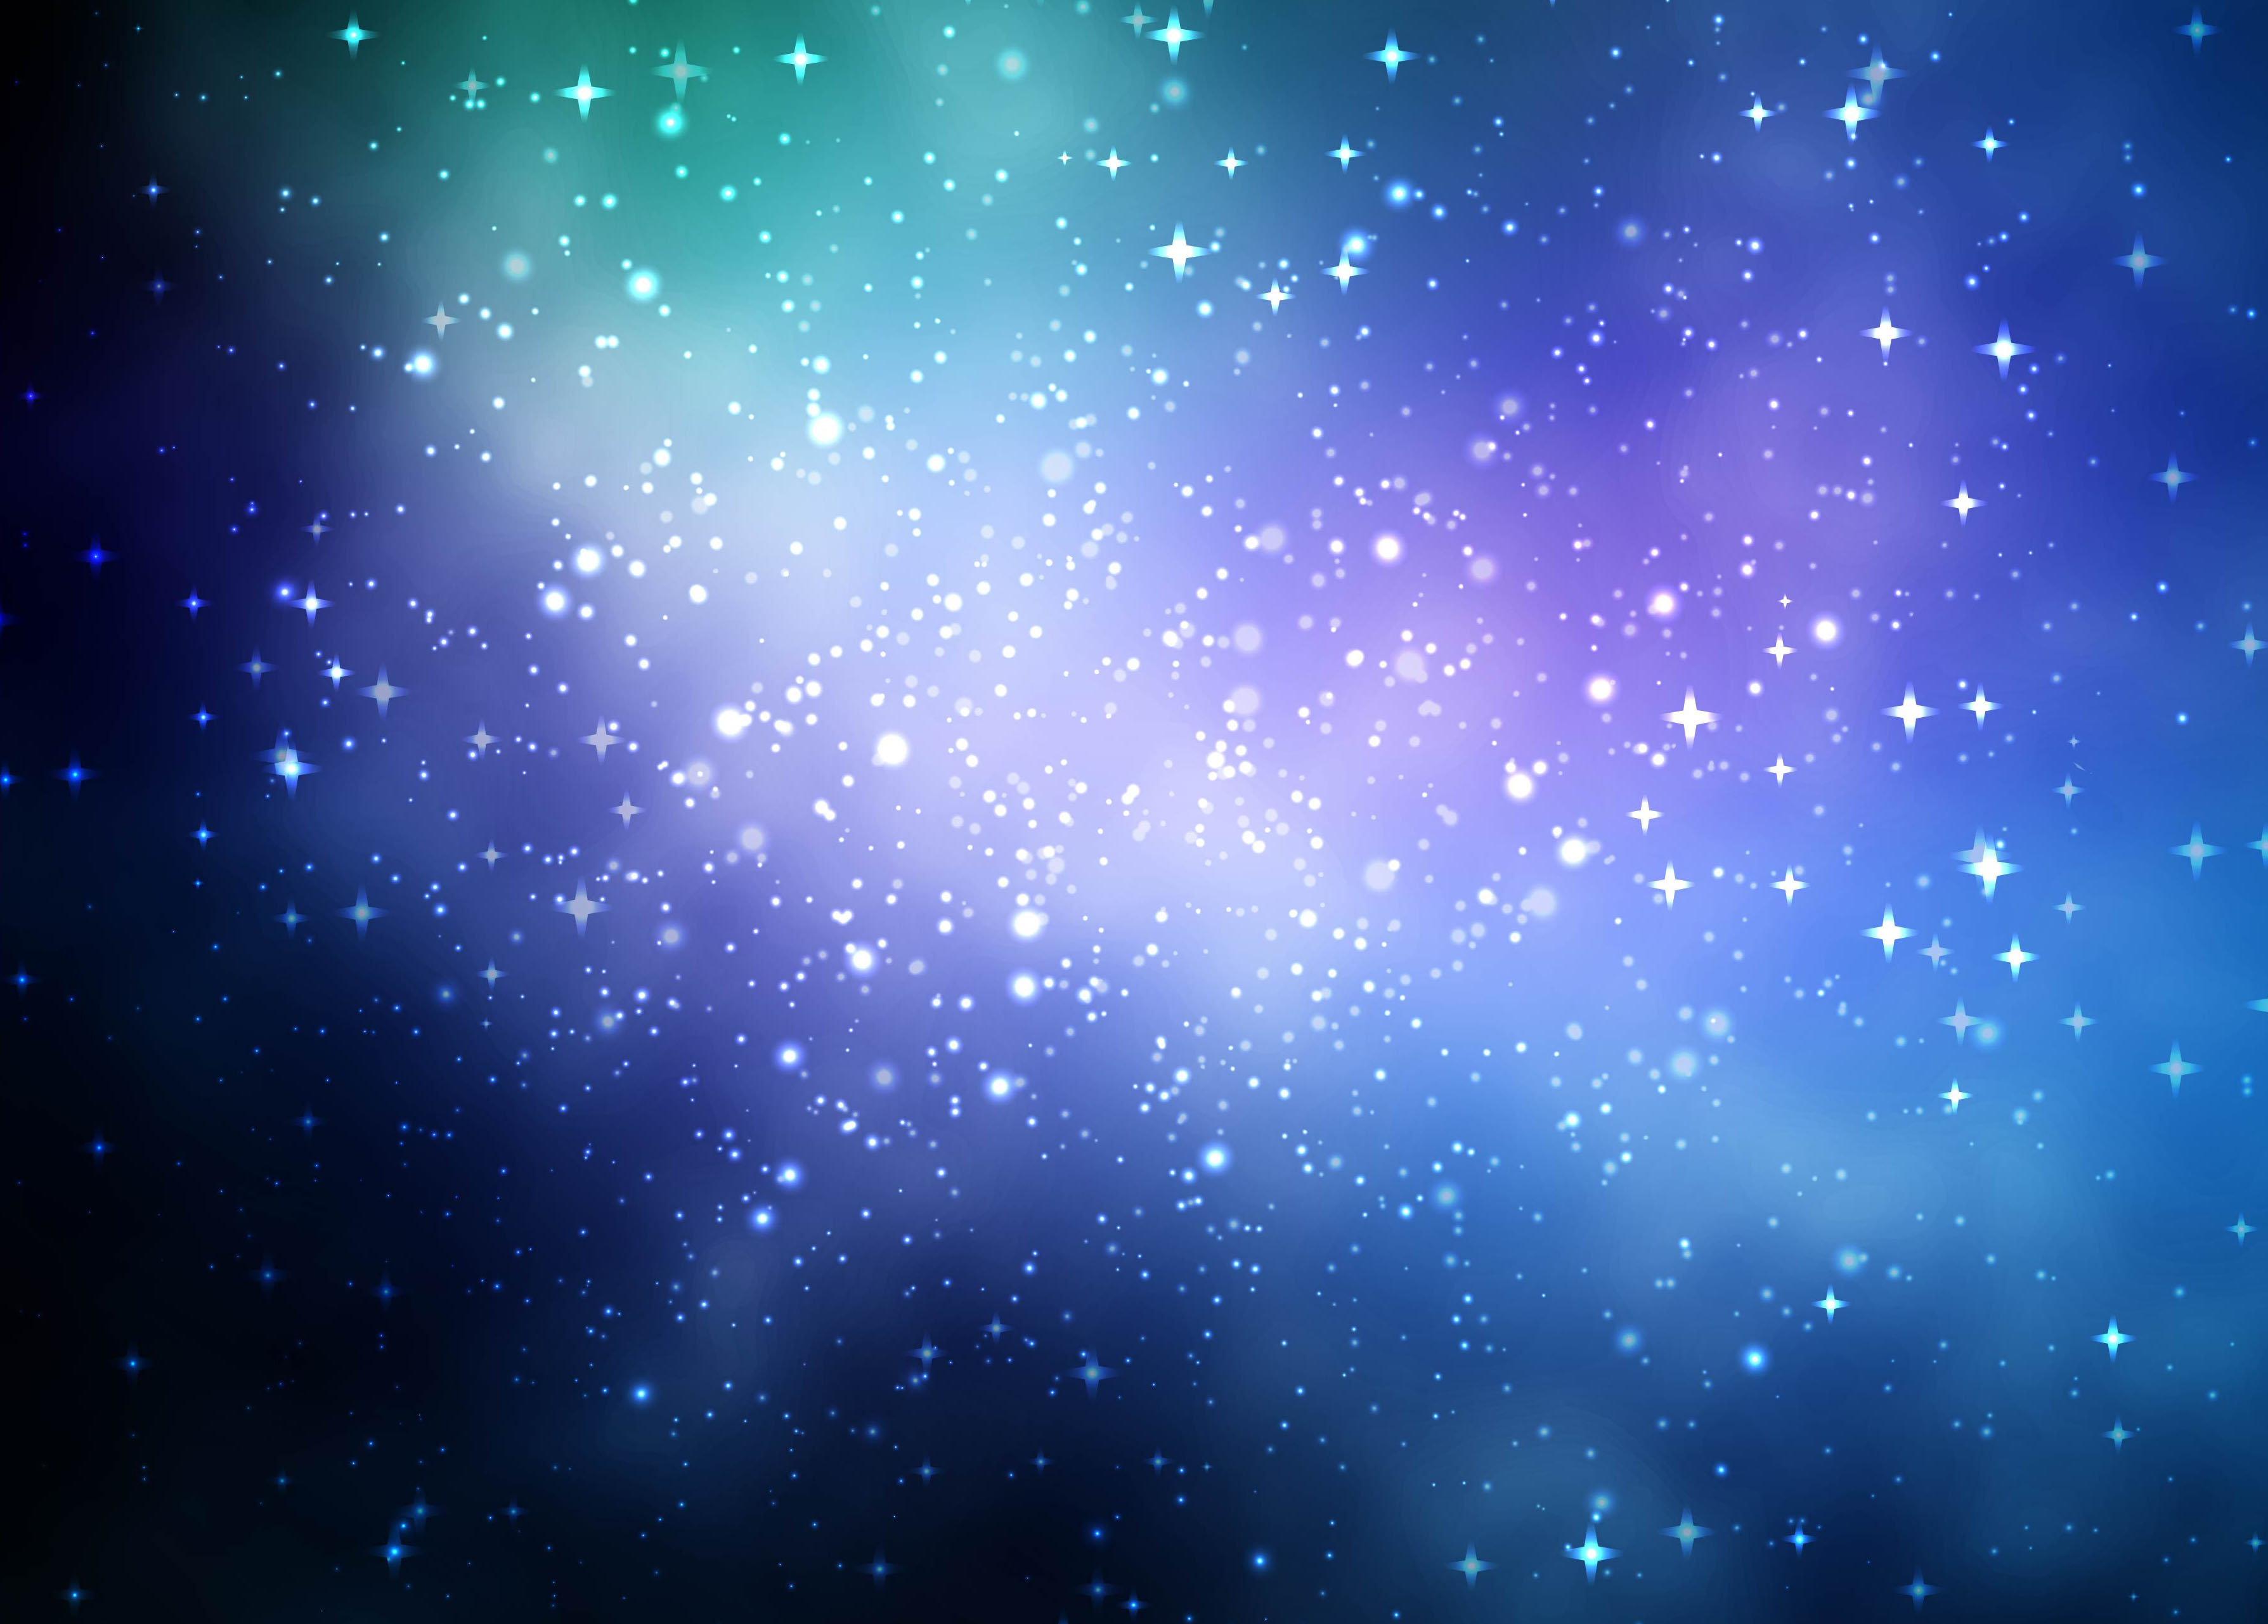 abstract colorful galaxy background